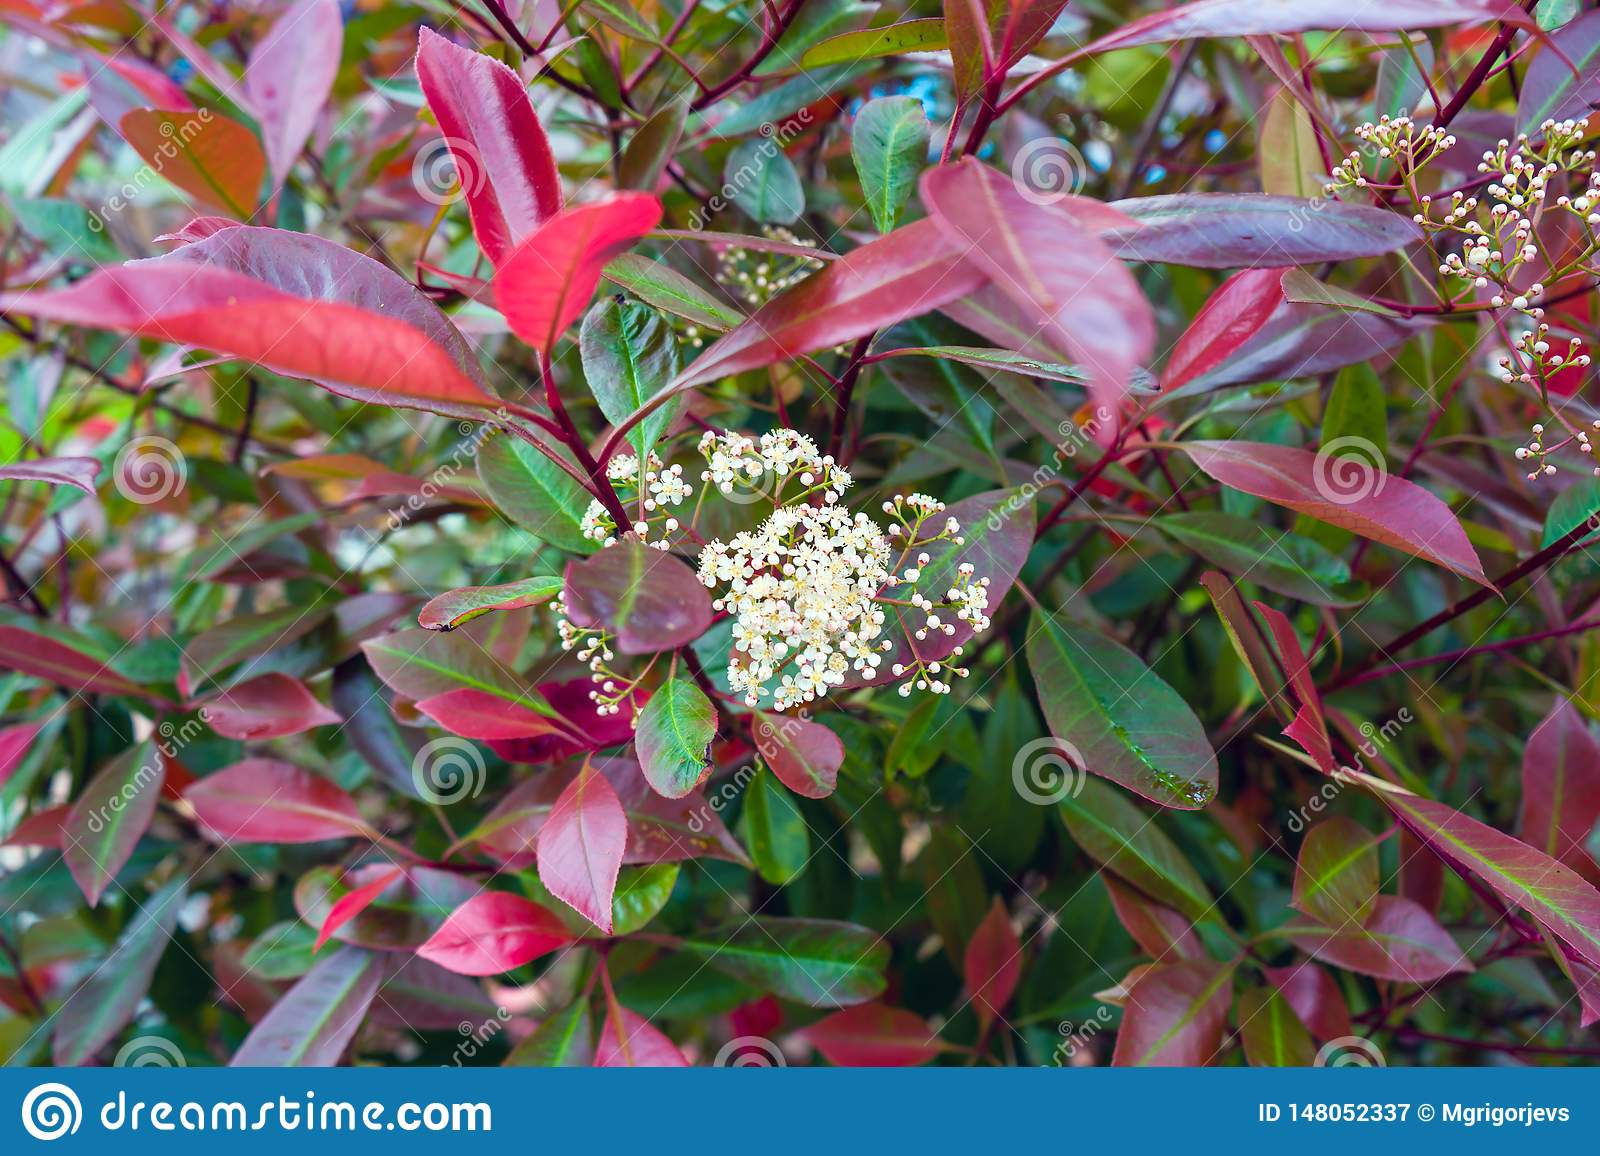 Photinia hedge with white flowers in garden